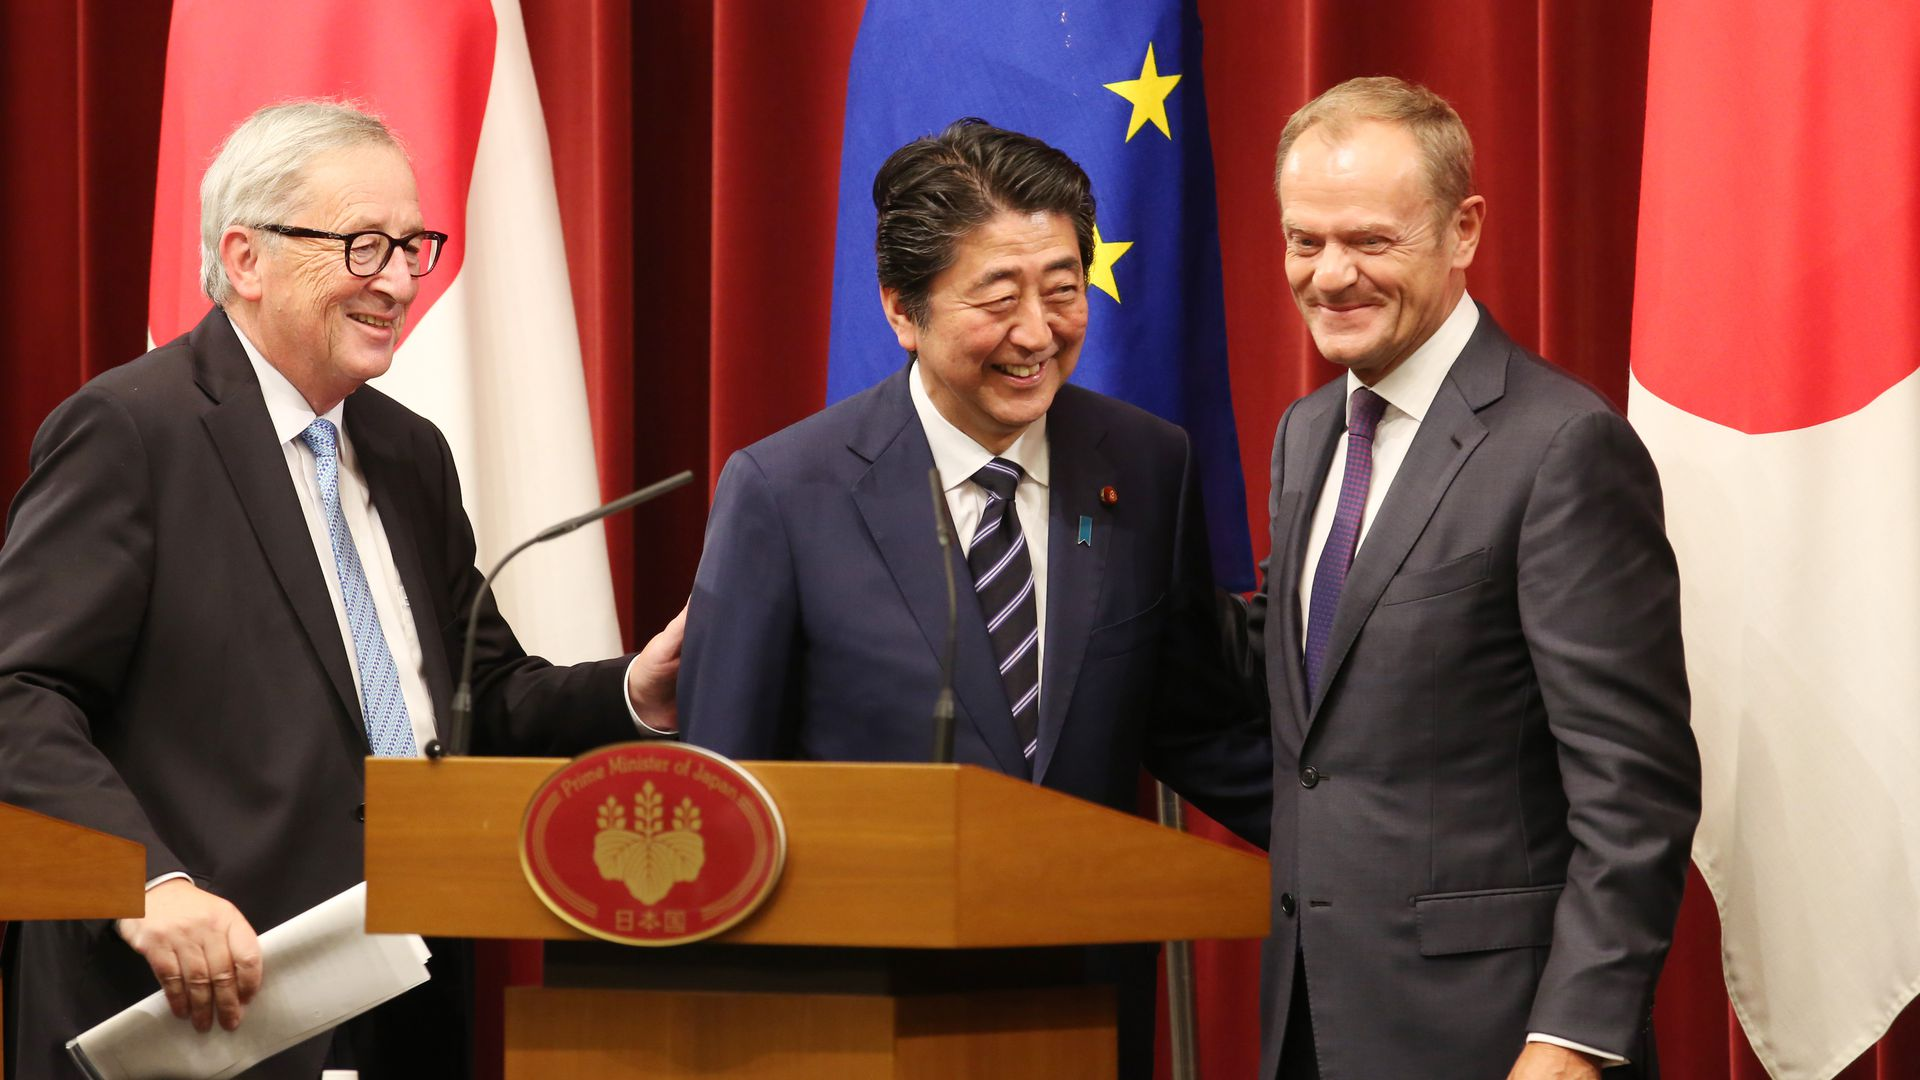 Japanese Prime Minister Shinzo Abe, European Commission President Jean-Claude Juncker and European Council President Donald Tusk at a joint press conference on the trade deal.